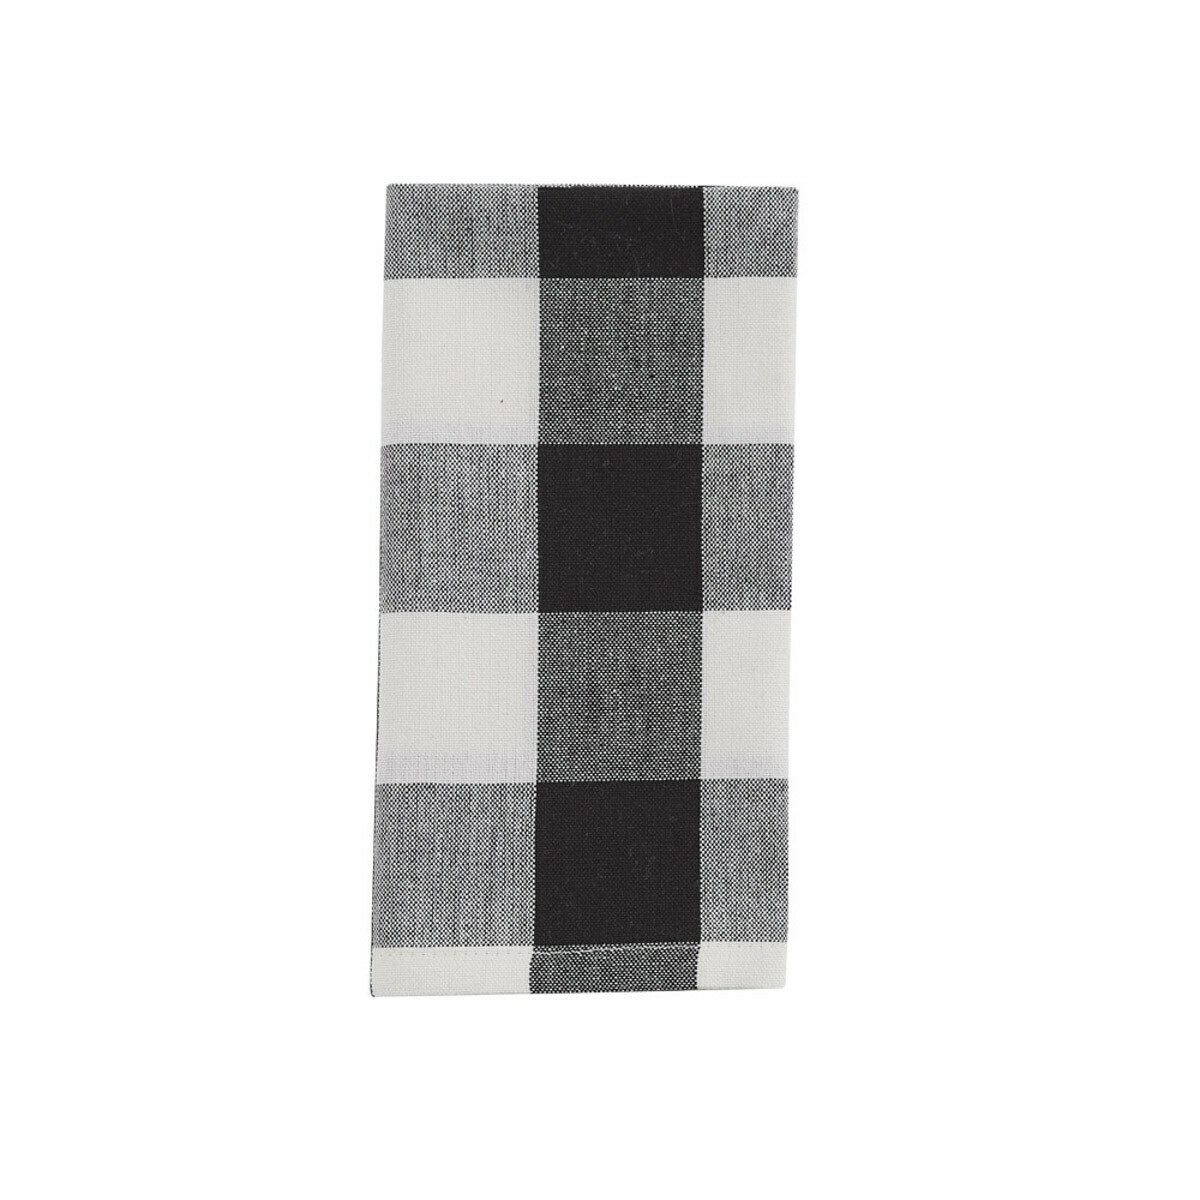 Wicklow Check Black & Cream Napkin